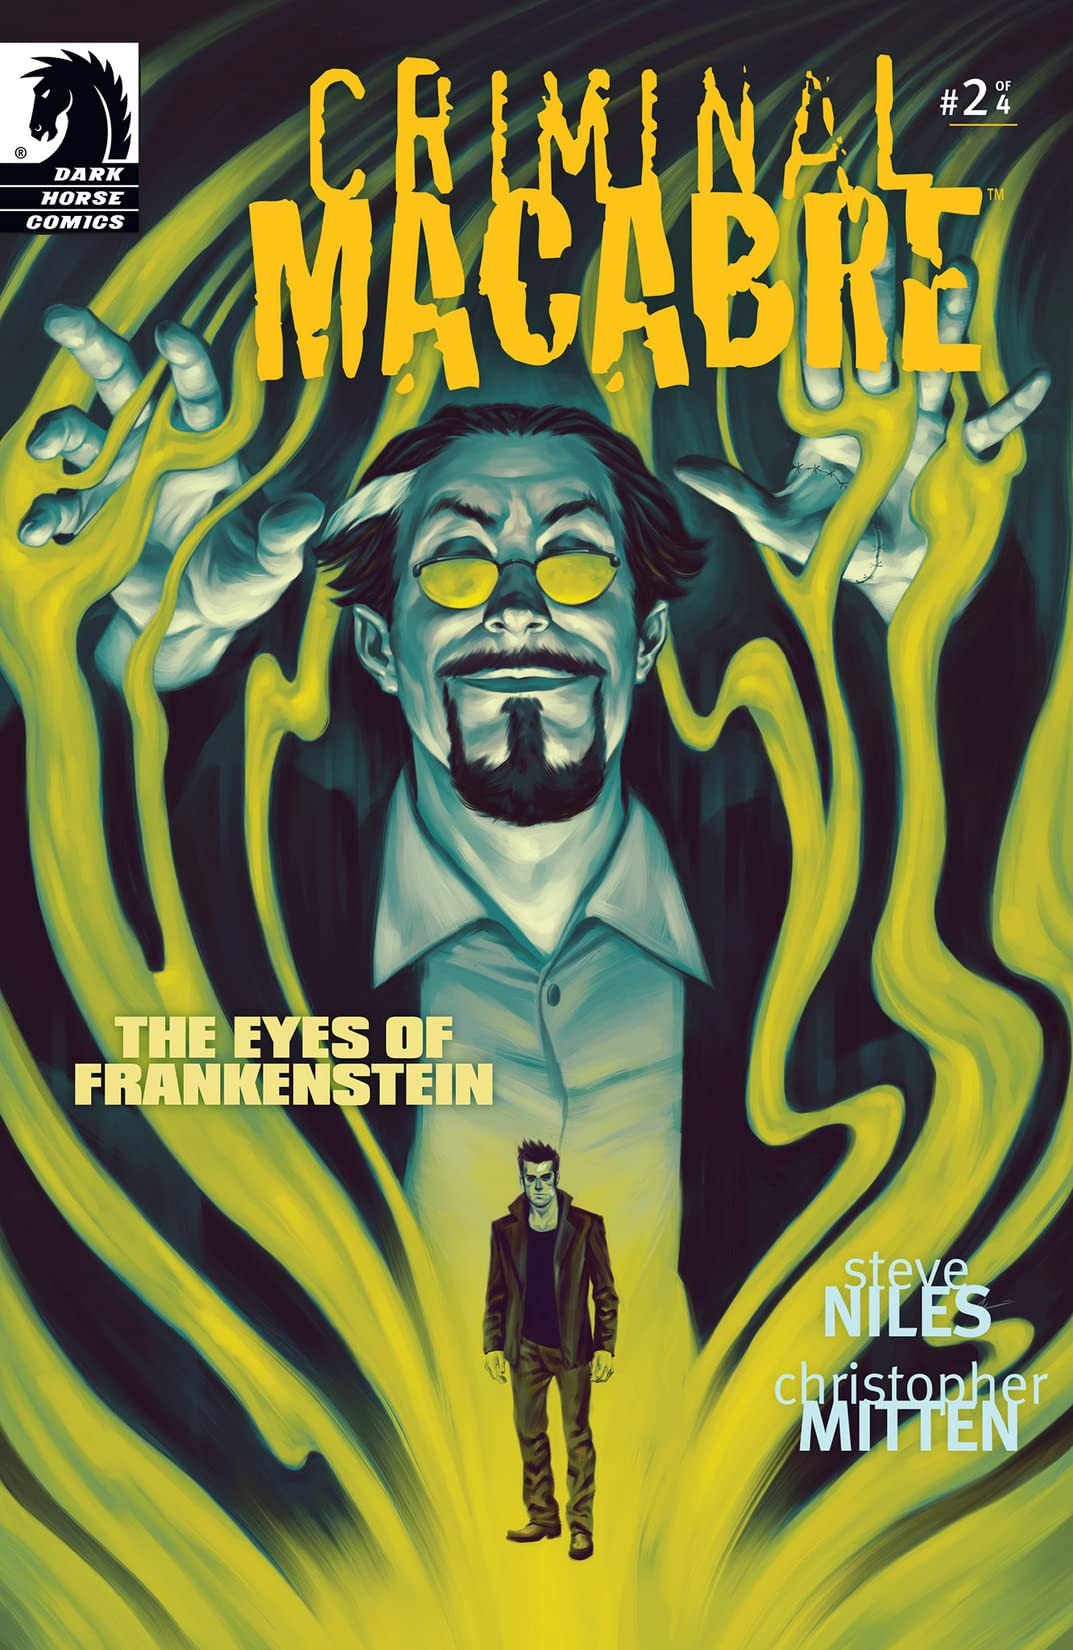 Criminal Macabre: The Eyes of Frankenstein #2